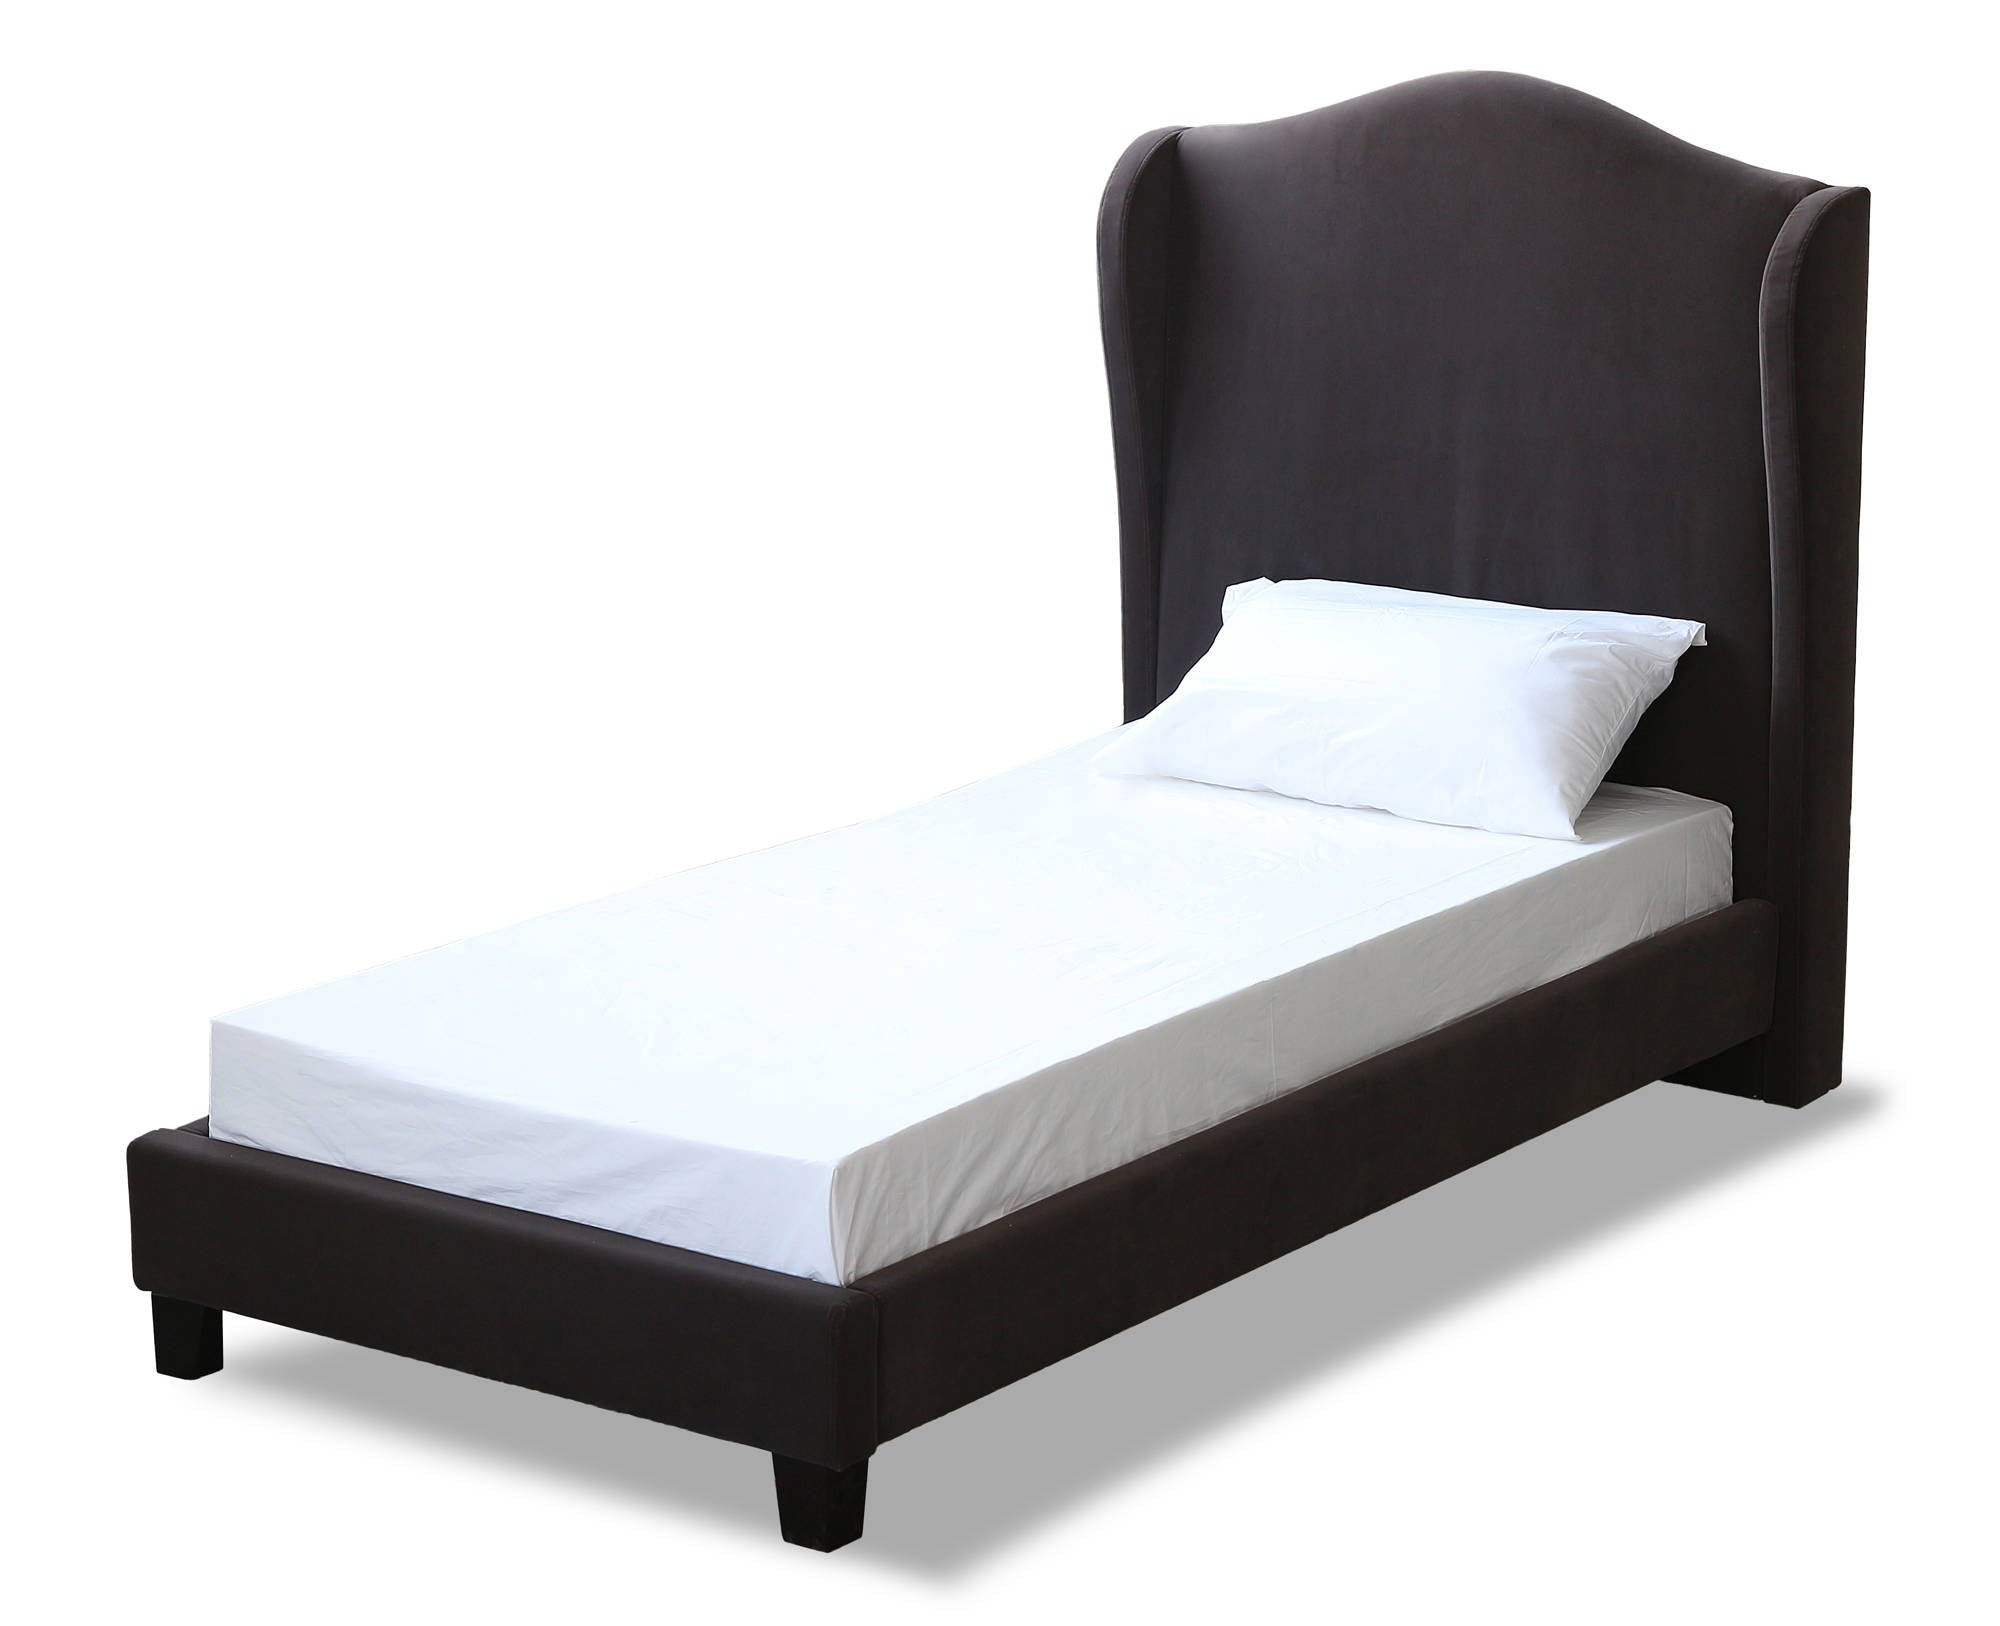 Cheverny Single Bed in Charcoal - Ezzo